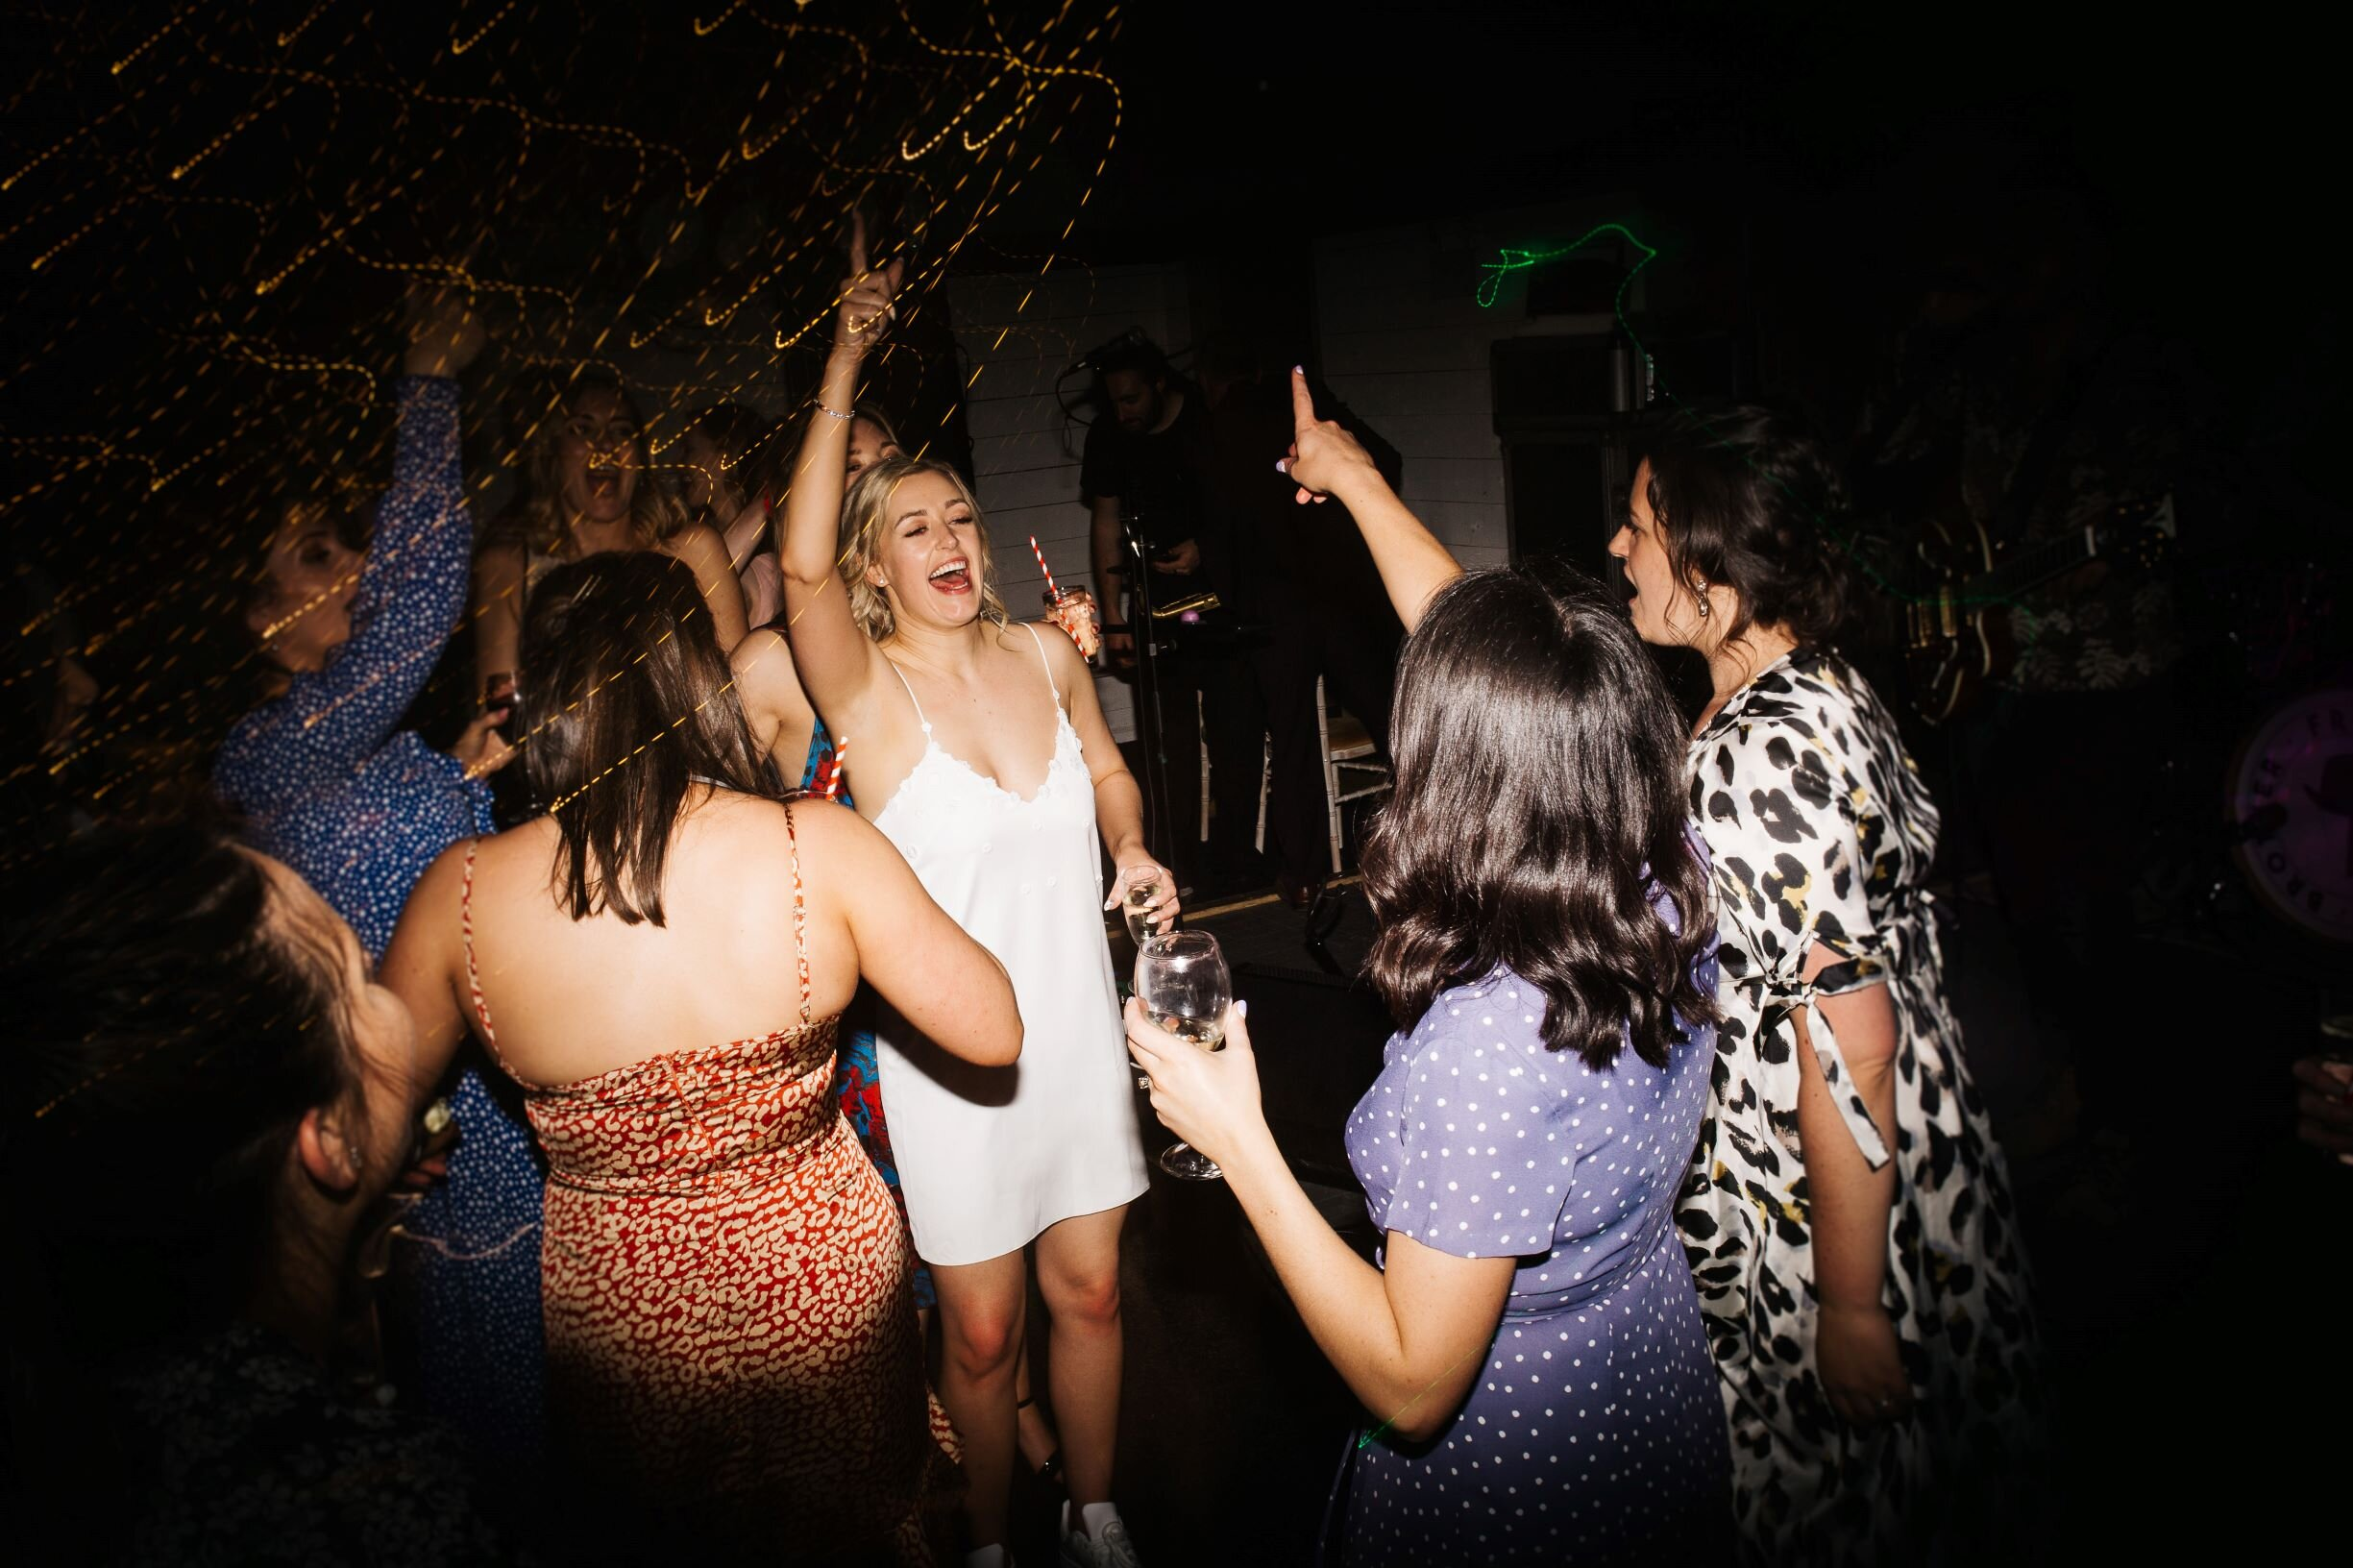 Moves and merriment on the dance floor. Photo by pauljosephphotography.com.jpg